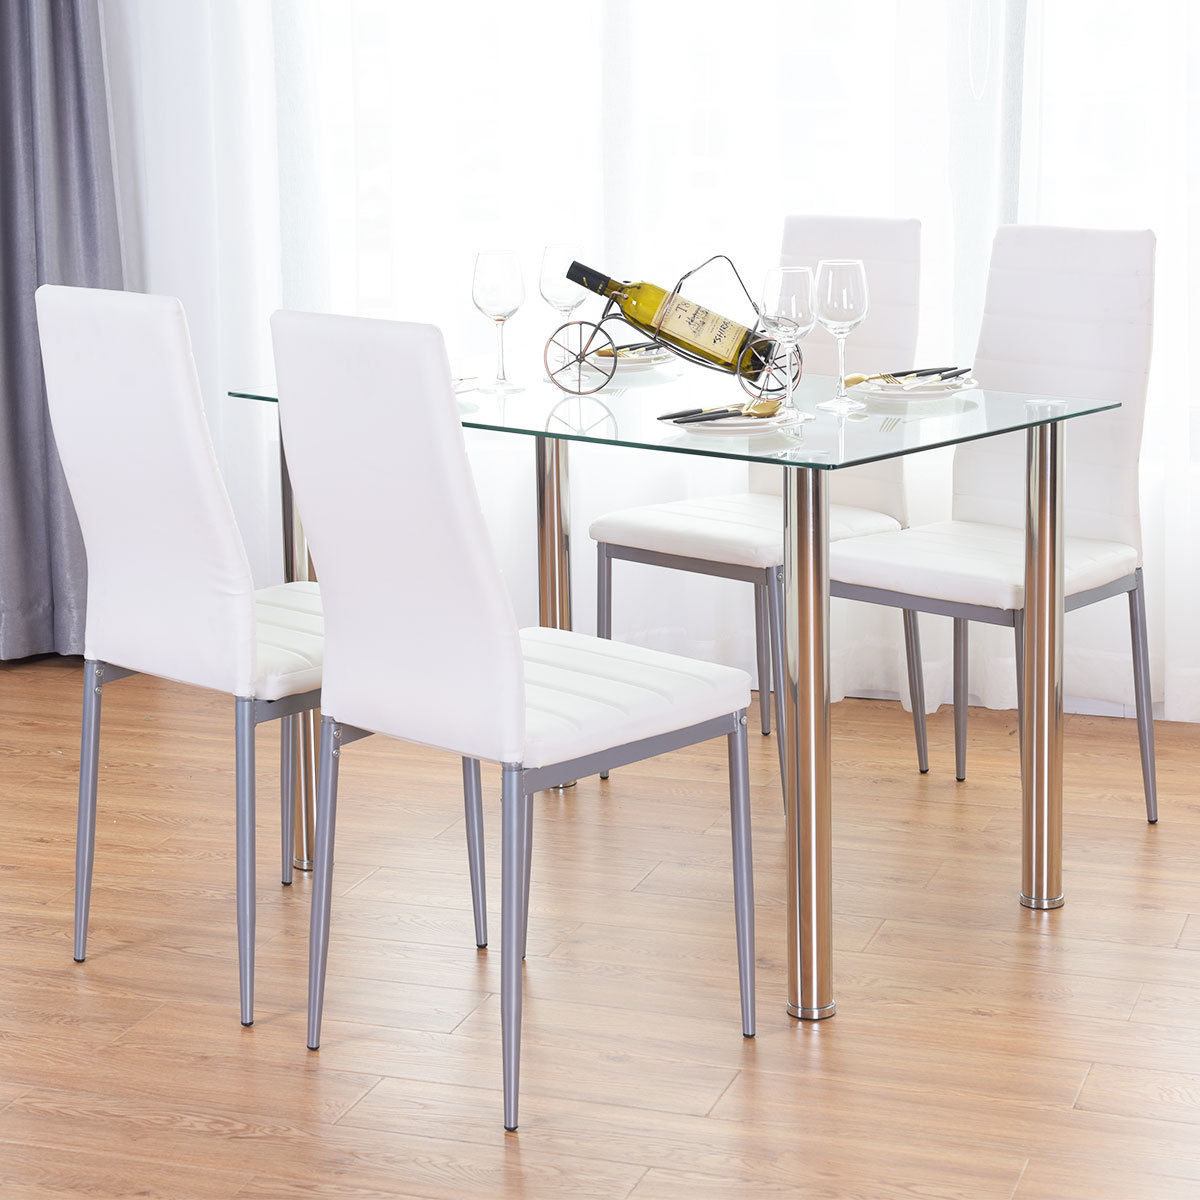 Costway 5 Piece Dining Room Set Table and 4 Chairs Glass Metal Kitchen Breakfast Furniture by Costway